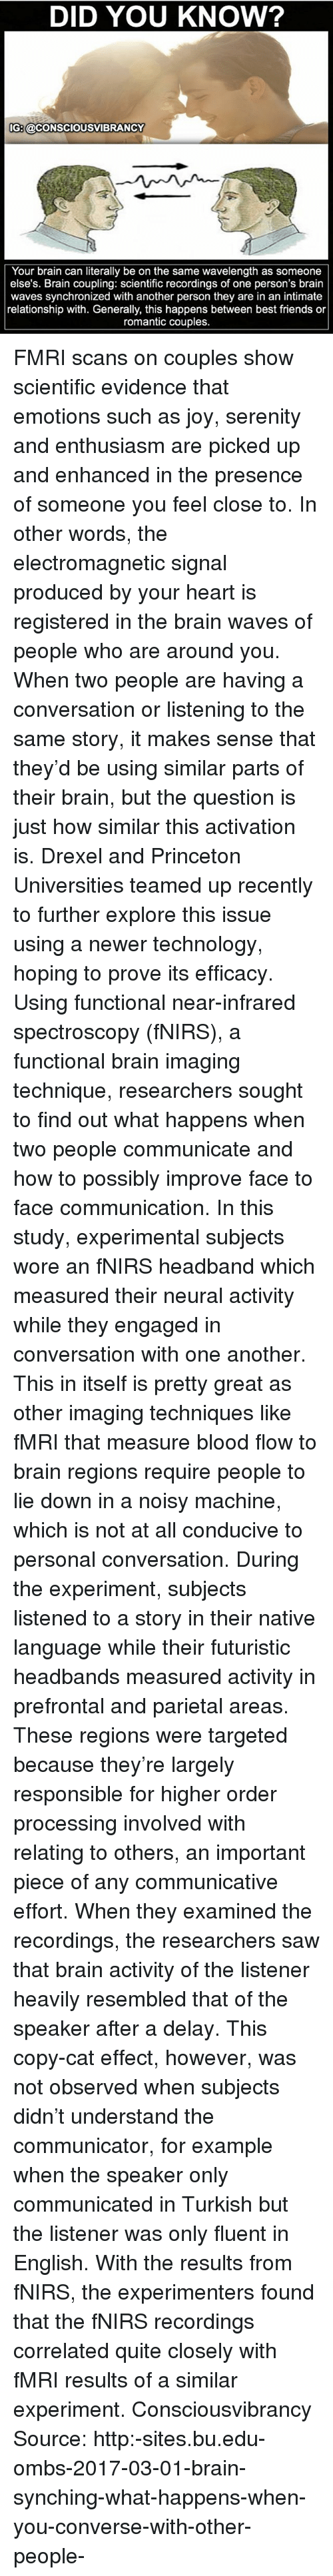 Friends, Memes, and Saw: DID YOU KNOW?  IG:@CONSCIOUSVIBRANCY  Your brain can literally be on the same wavelength as someone  else's. Brain coupling: scientific recordings of one person's brain  waves synchronized with another person they are in an intimate  relationship with. Generally, this happens between best friends or  romantic couples. FMRI scans on couples show scientific evidence that emotions such as joy, serenity and enthusiasm are picked up and enhanced in the presence of someone you feel close to. In other words, the electromagnetic signal produced by your heart is registered in the brain waves of people who are around you. When two people are having a conversation or listening to the same story, it makes sense that they'd be using similar parts of their brain, but the question is just how similar this activation is. Drexel and Princeton Universities teamed up recently to further explore this issue using a newer technology, hoping to prove its efficacy. Using functional near-infrared spectroscopy (fNIRS), a functional brain imaging technique, researchers sought to find out what happens when two people communicate and how to possibly improve face to face communication. In this study, experimental subjects wore an fNIRS headband which measured their neural activity while they engaged in conversation with one another. This in itself is pretty great as other imaging techniques like fMRI that measure blood flow to brain regions require people to lie down in a noisy machine, which is not at all conducive to personal conversation. During the experiment, subjects listened to a story in their native language while their futuristic headbands measured activity in prefrontal and parietal areas. These regions were targeted because they're largely responsible for higher order processing involved with relating to others, an important piece of any communicative effort. When they examined the recordings, the researchers saw that brain activity of the listener heavily resembled that of the speaker after a delay. This copy-cat effect, however, was not observed when subjects didn't understand the communicator, for example when the speaker only communicated in Turkish but the listener was only fluent in English. With the results from fNIRS, the experimenters found that the fNIRS recordings correlated quite closely with fMRI results of a similar experiment. Consciousvibrancy Source: http:-sites.bu.edu-ombs-2017-03-01-brain-synching-what-happens-when-you-converse-with-other-people-